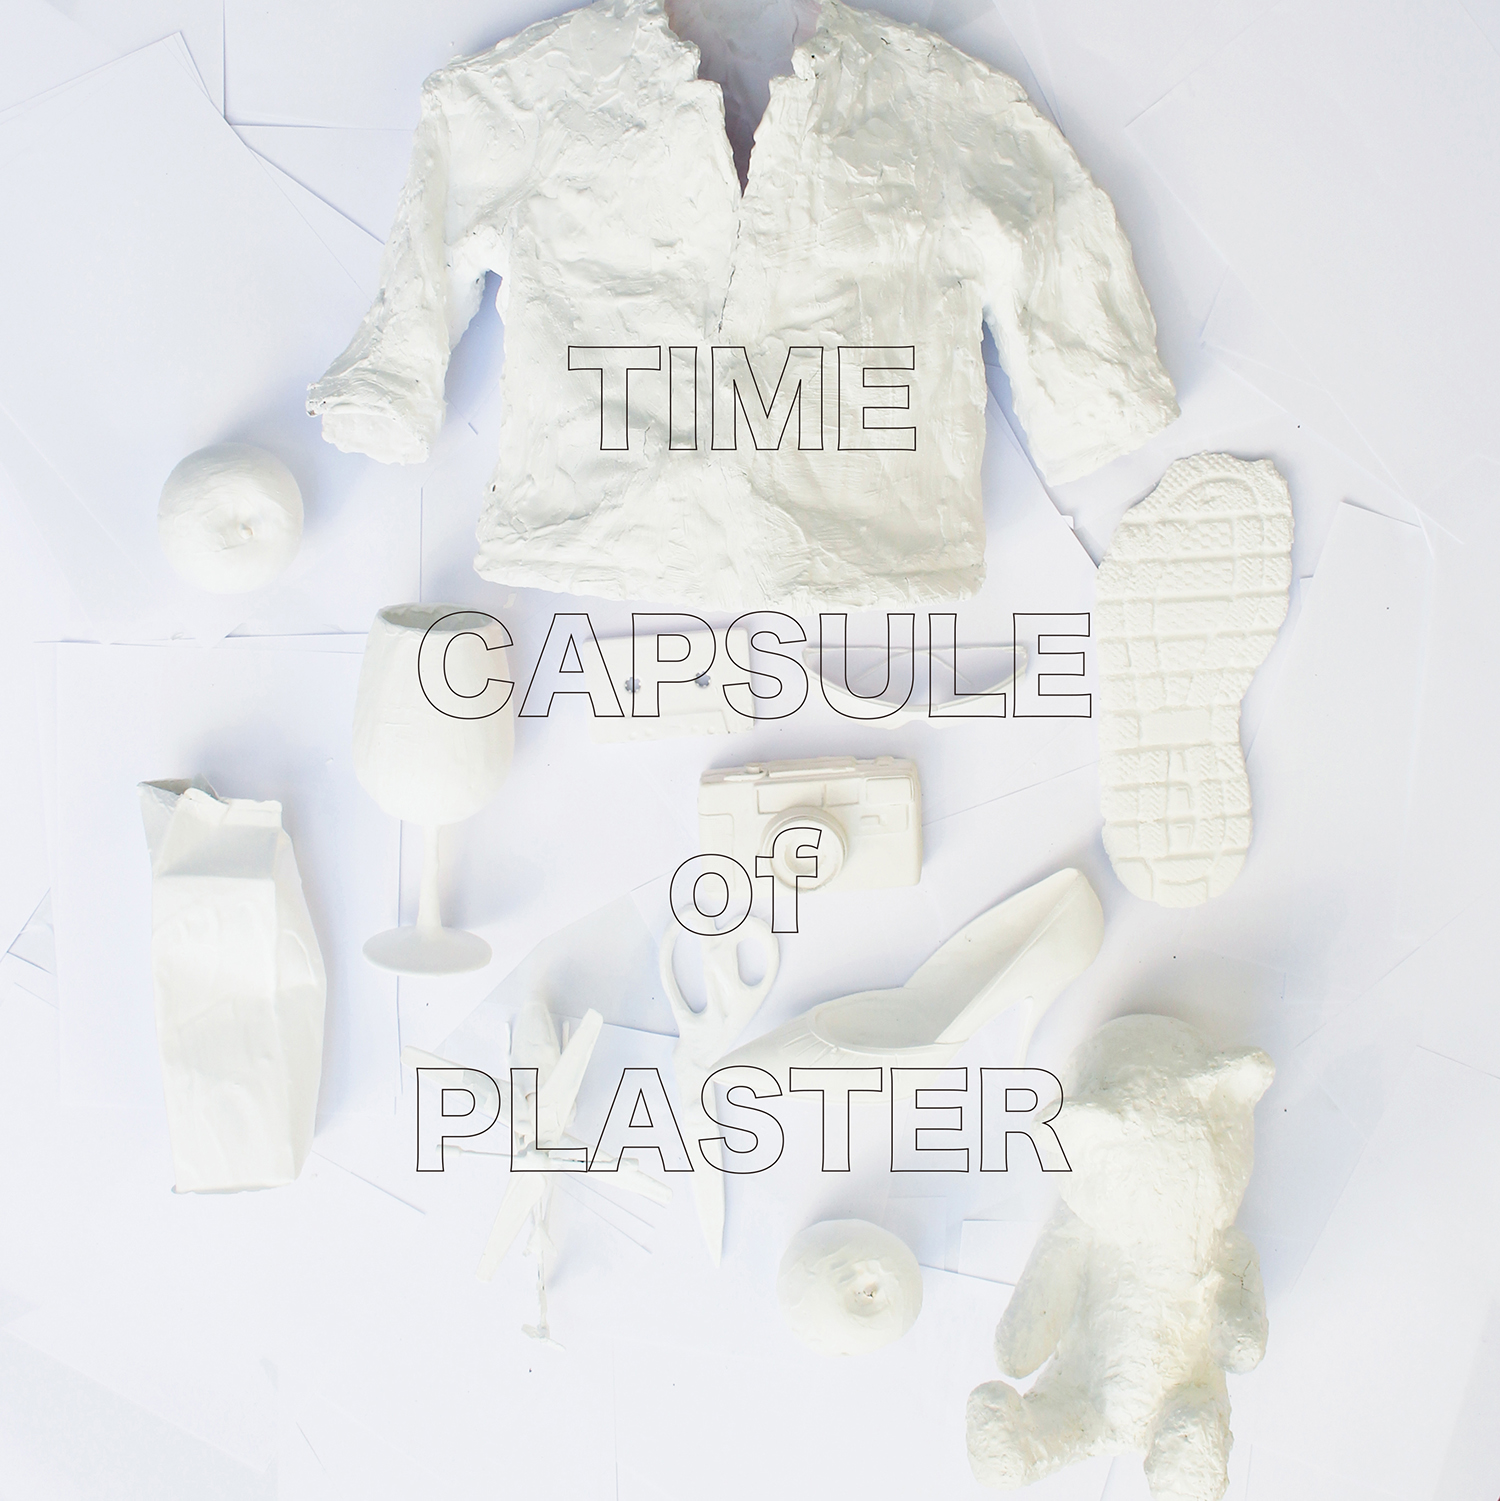 TIME CAPSULE of PLASTER